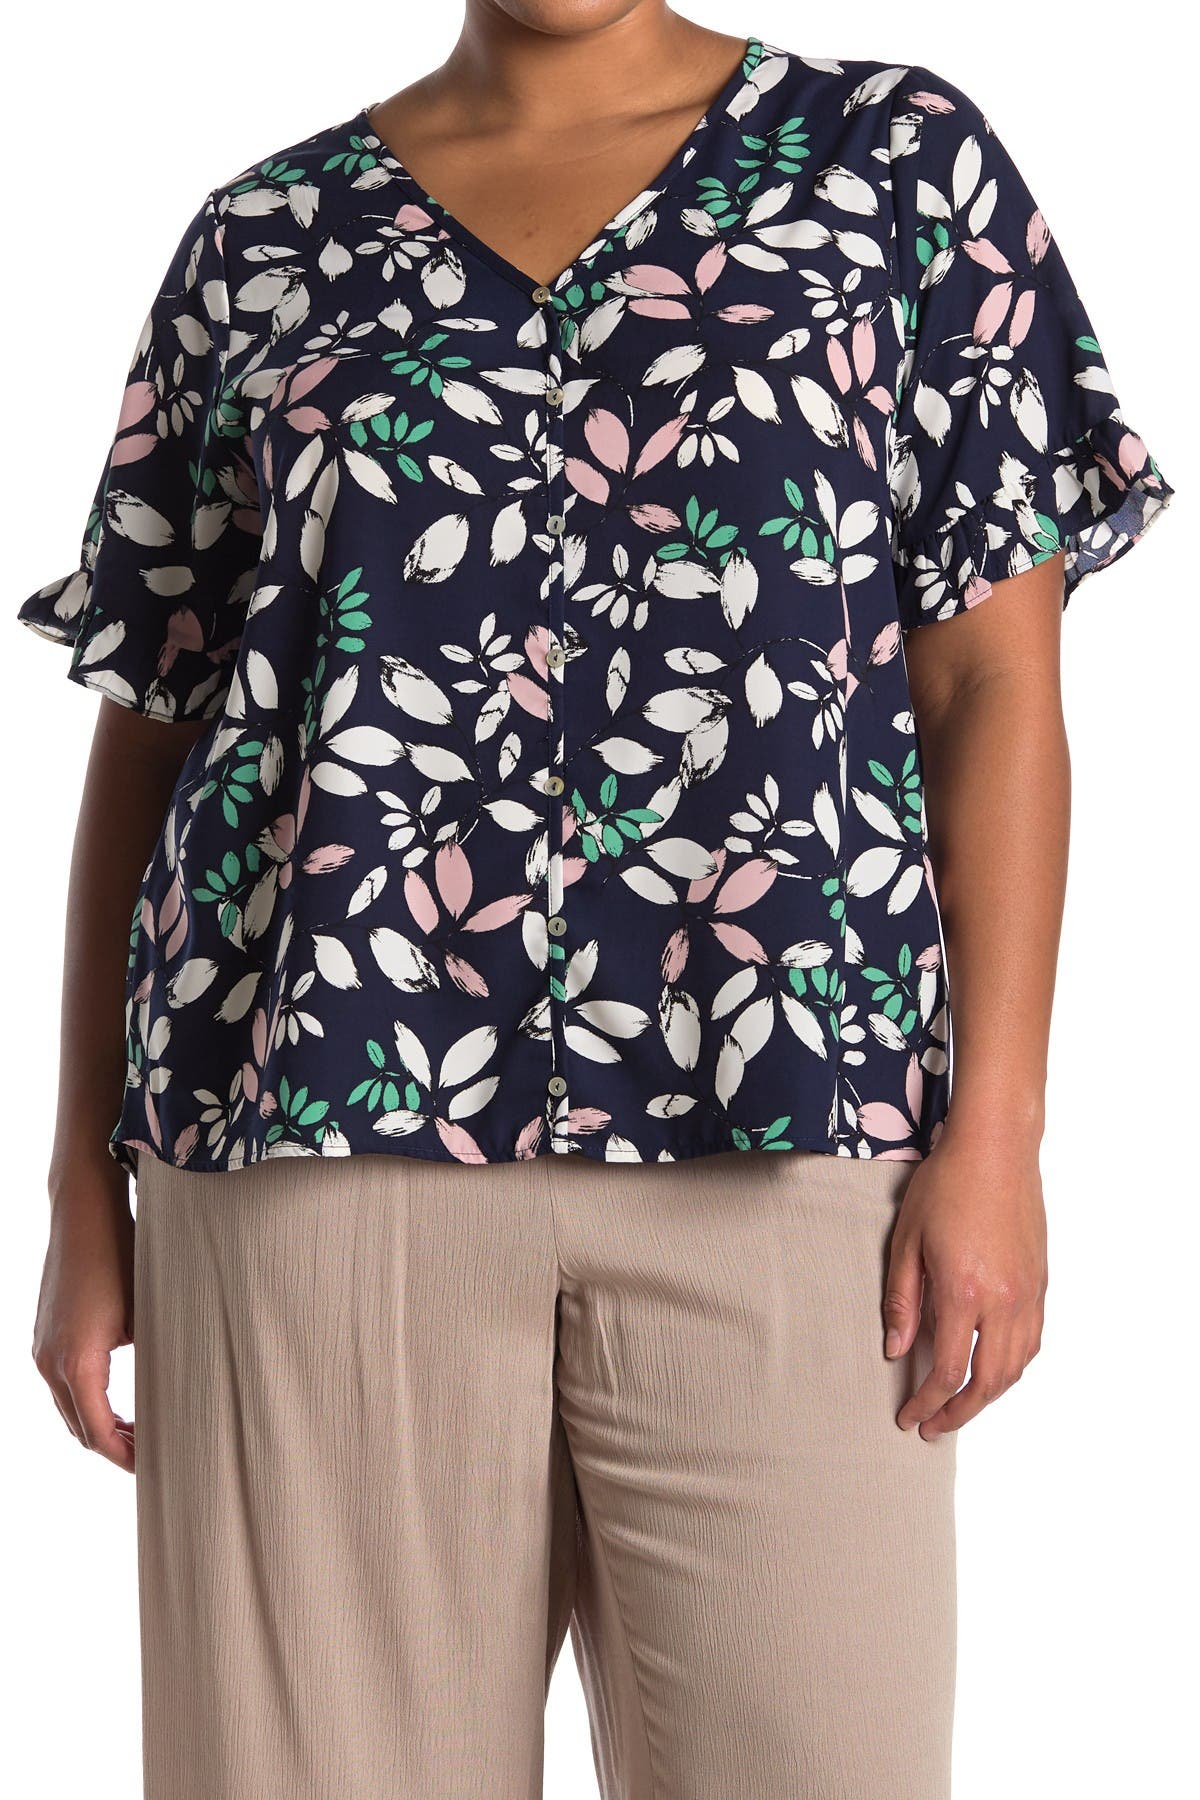 Image of TUA Printed Button Front Woven Top